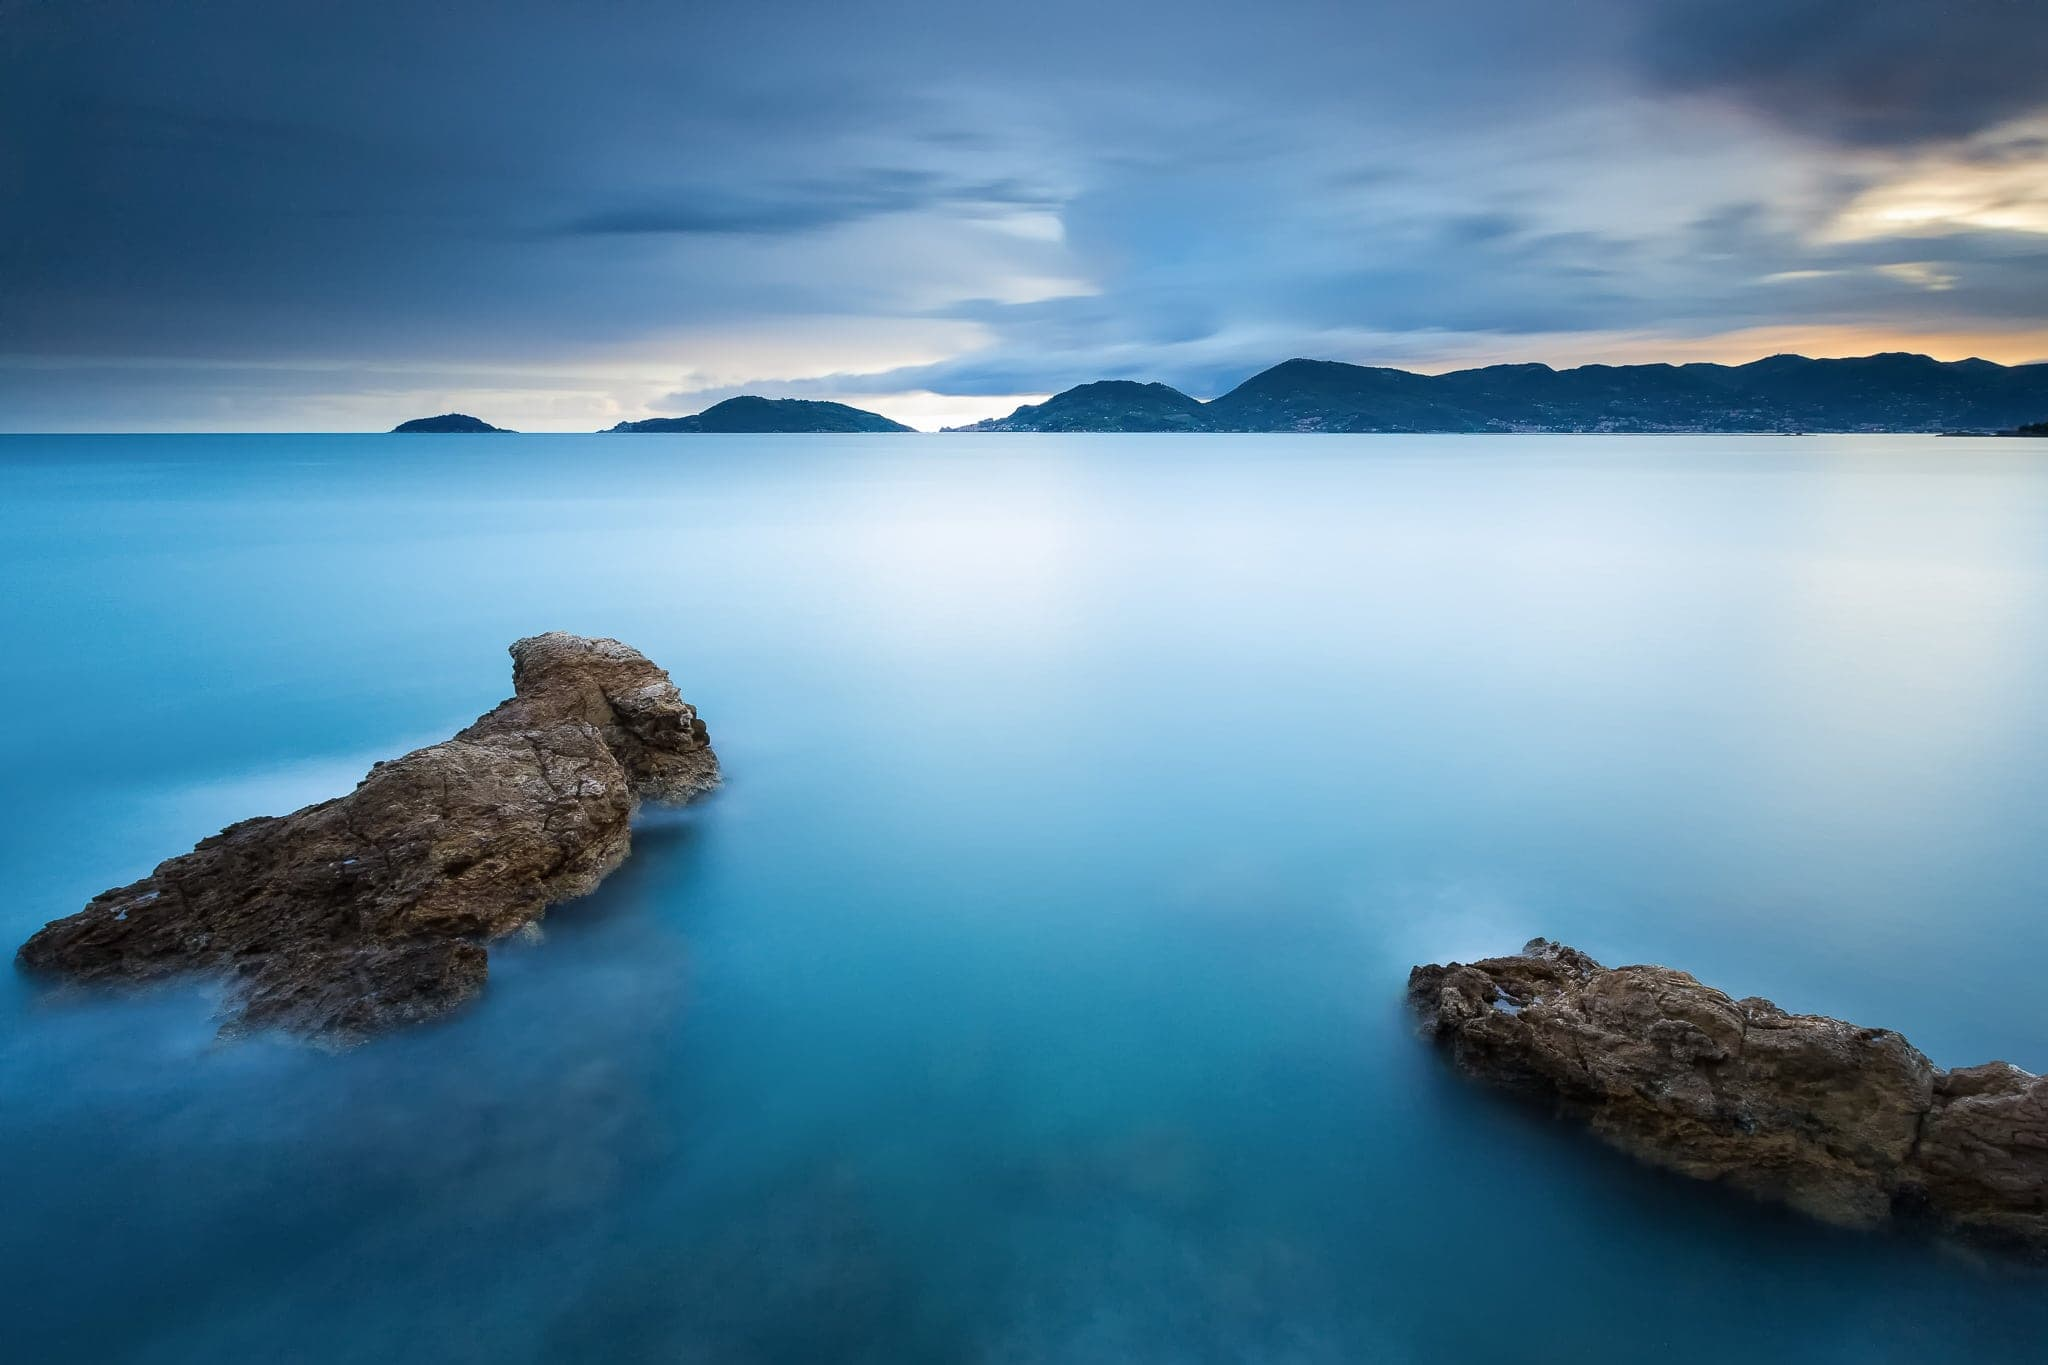 Francesco Gola Seascape Landscape Photography Long Exposure Lerici Belvedere Summer Storm Google